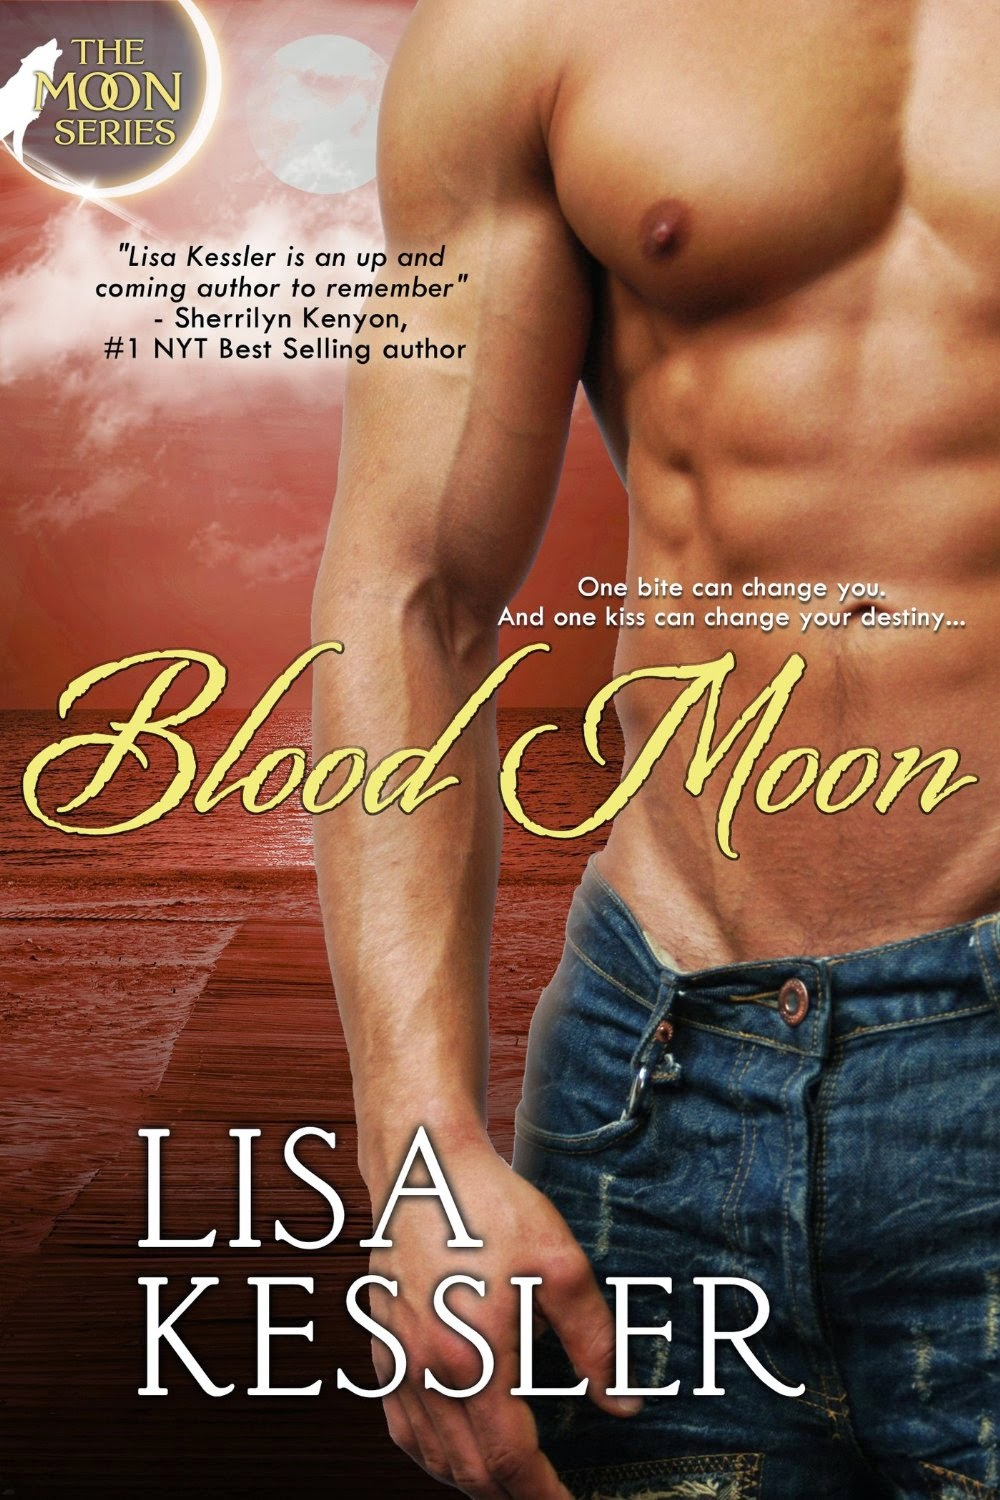 Blood Moon (Entangled Select Otherworld) (Moon Series Book 3) by Lisa Kessler (PNR)